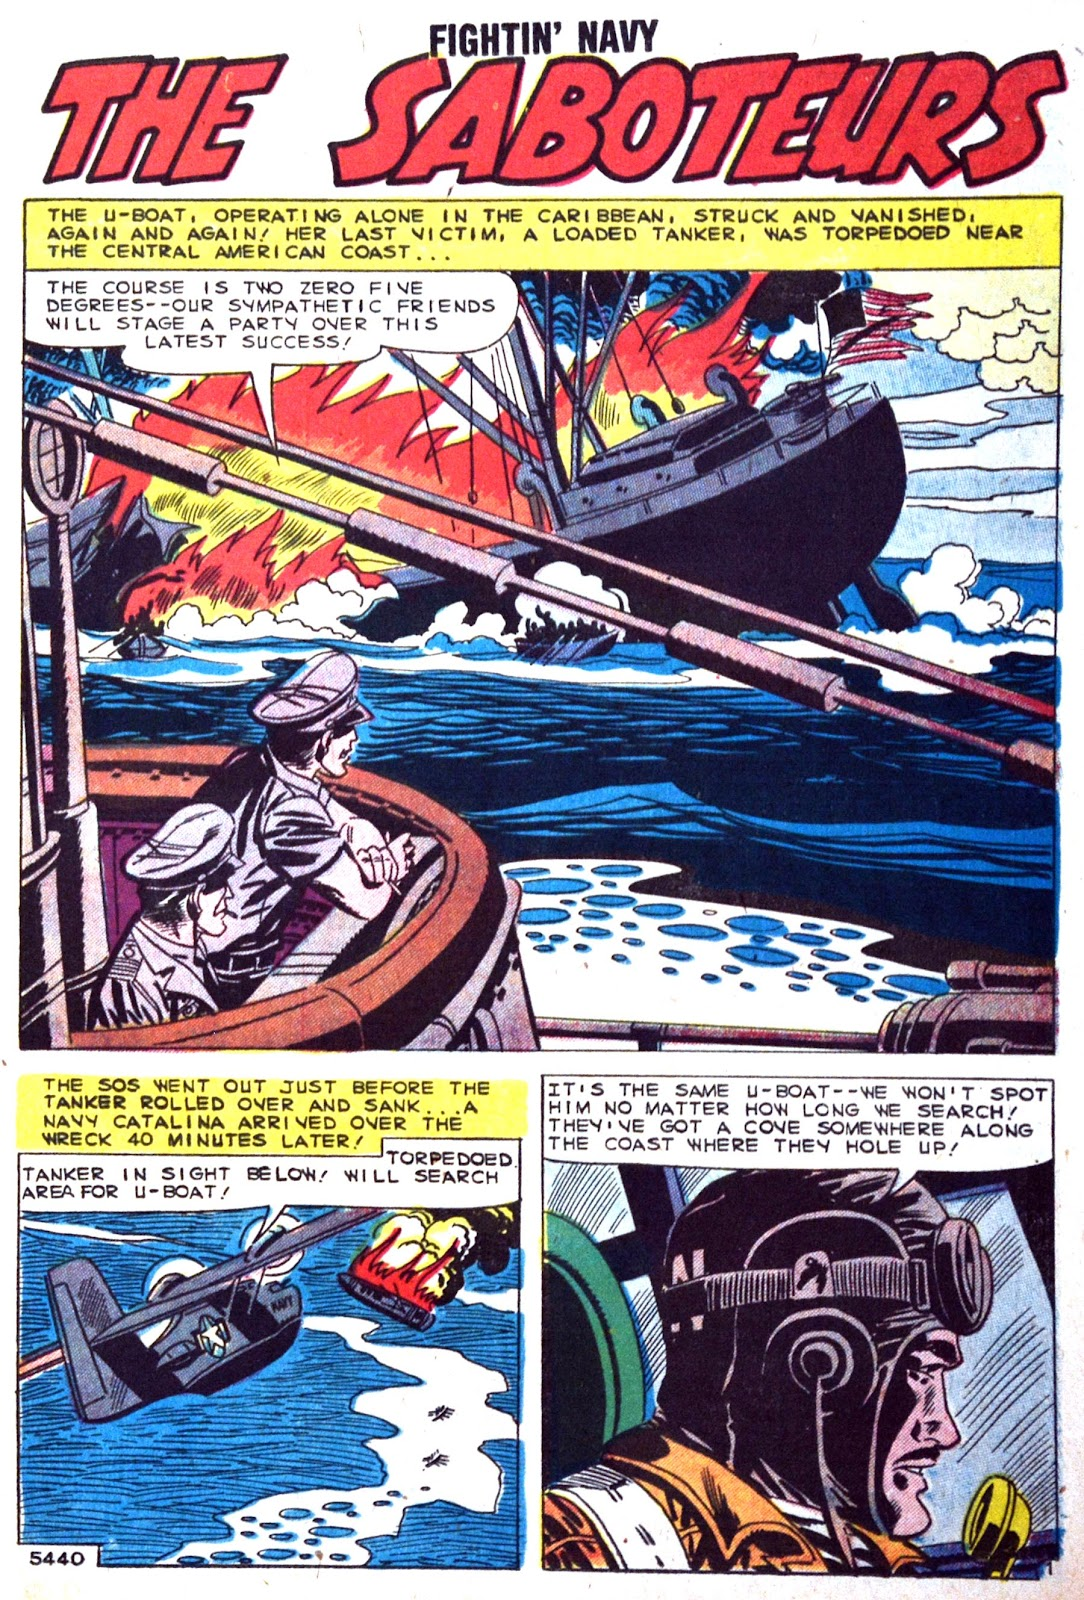 Read online Fightin' Navy comic -  Issue #89 - 11